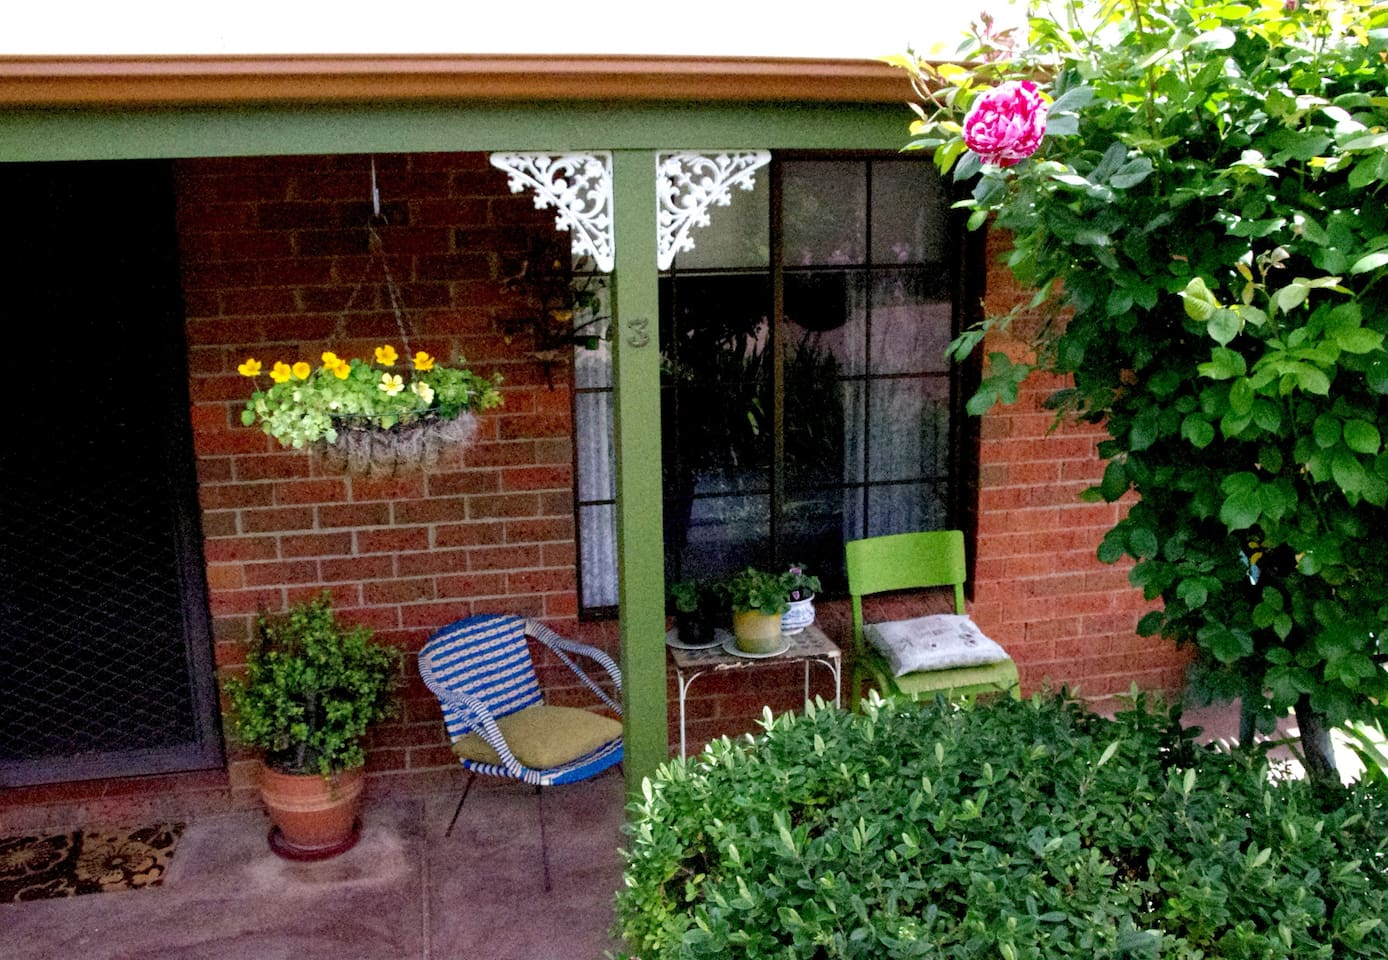 Bendigo has 300 days of sunshine and the verandah is a lovely place to enjoy them.